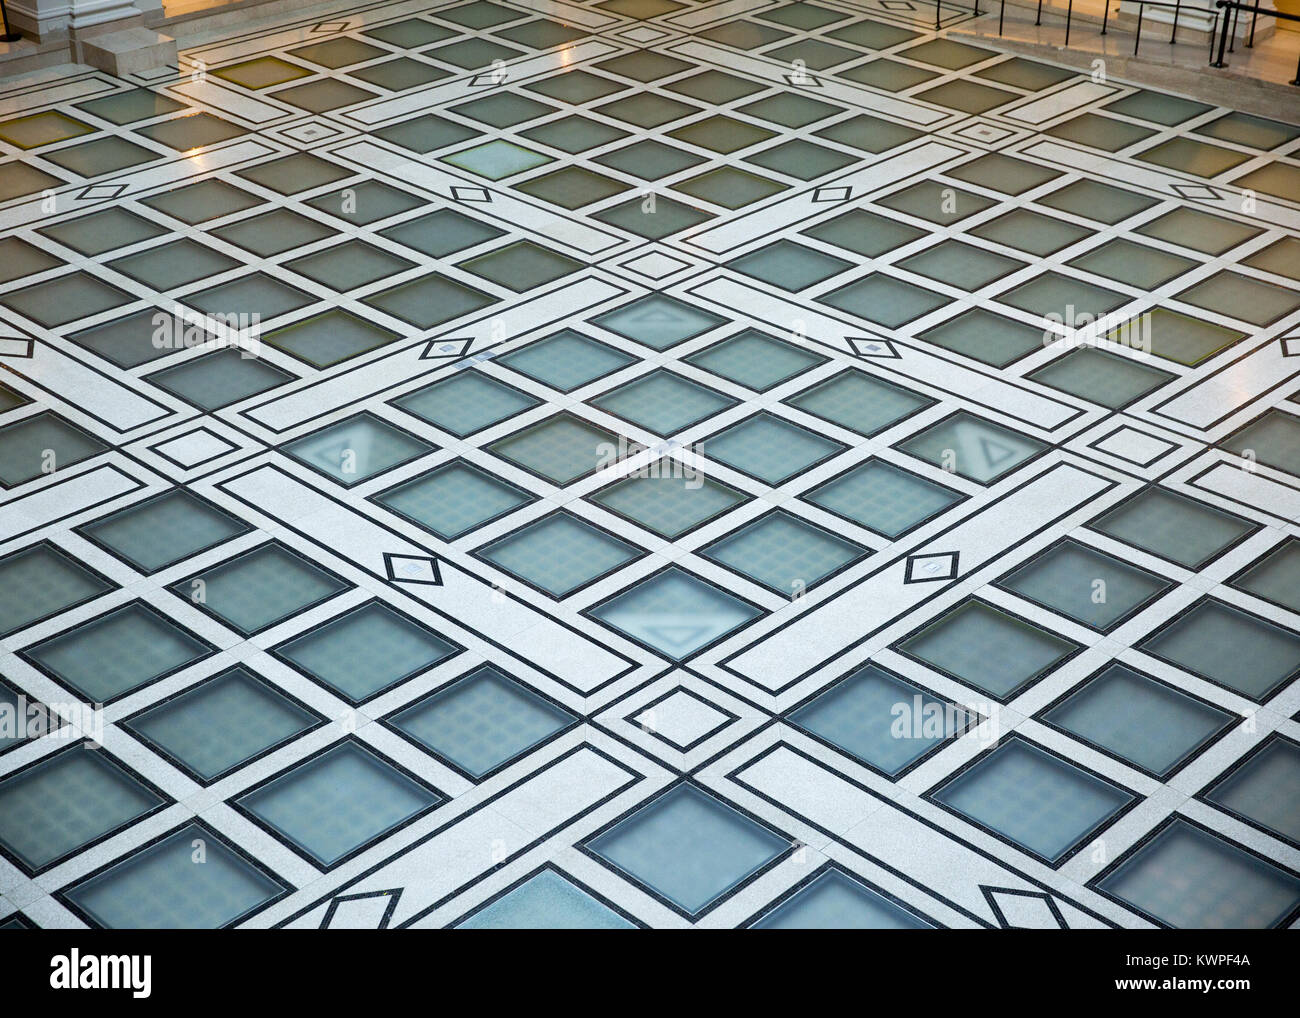 Geometric Floor Tiles Stock Photos & Geometric Floor Tiles Stock ...